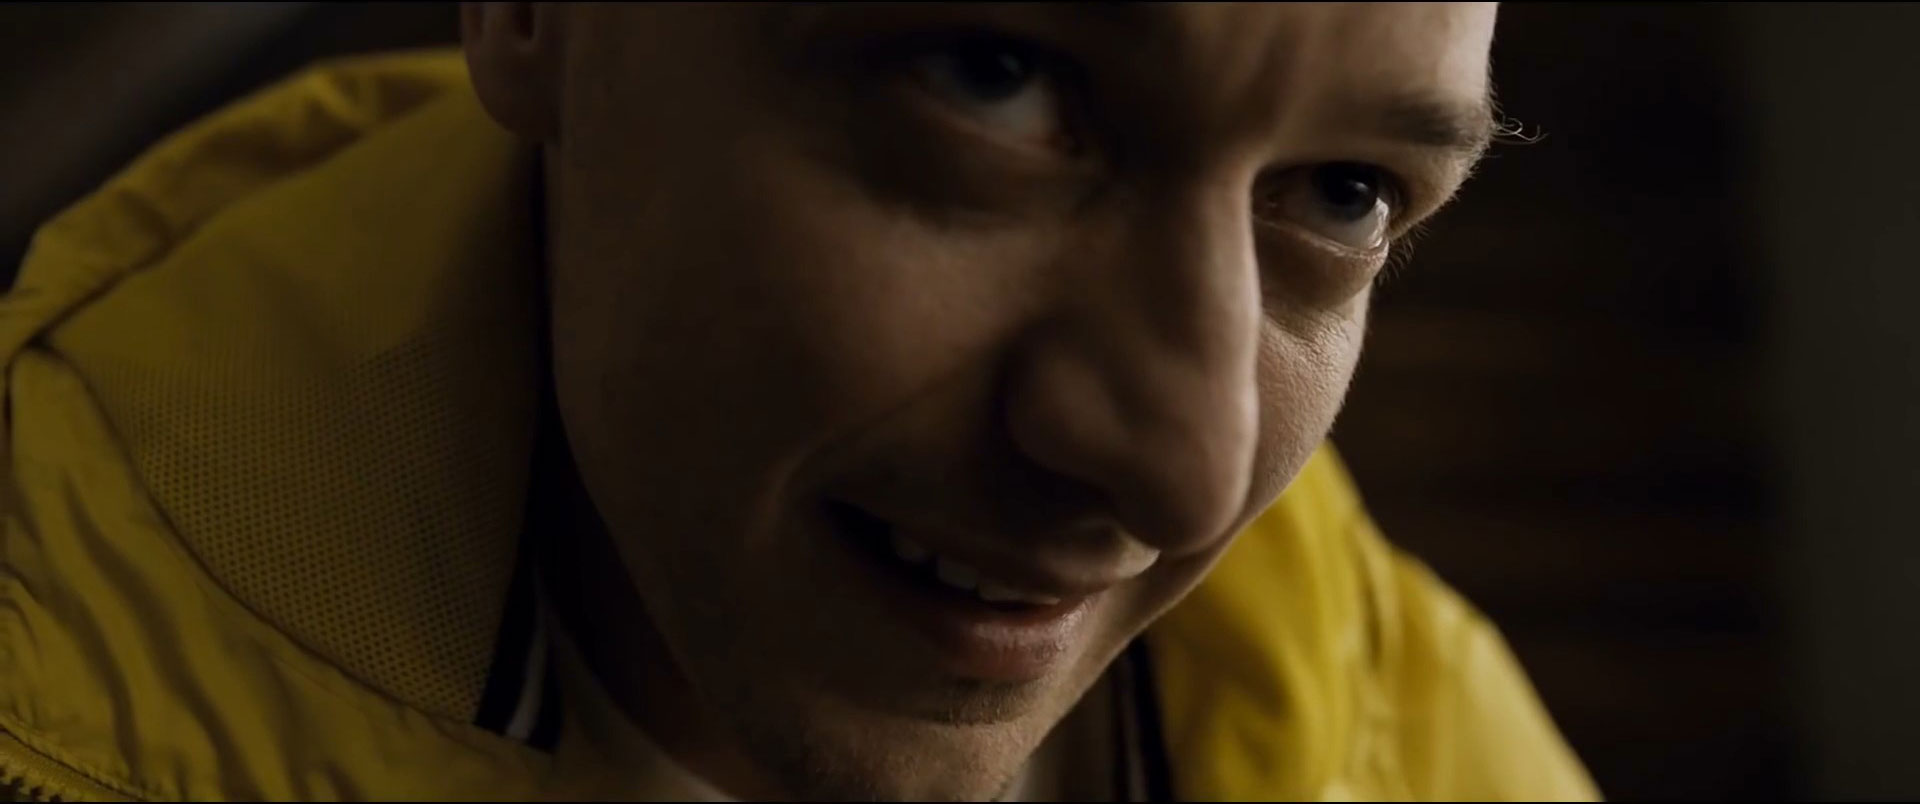 Split-Official-Trailer-1-(2017)---M.-Night-Shyamalan-Movie-[VDownloader].mp4_snapshot_02.13_[2017.03.21_04.29.02]